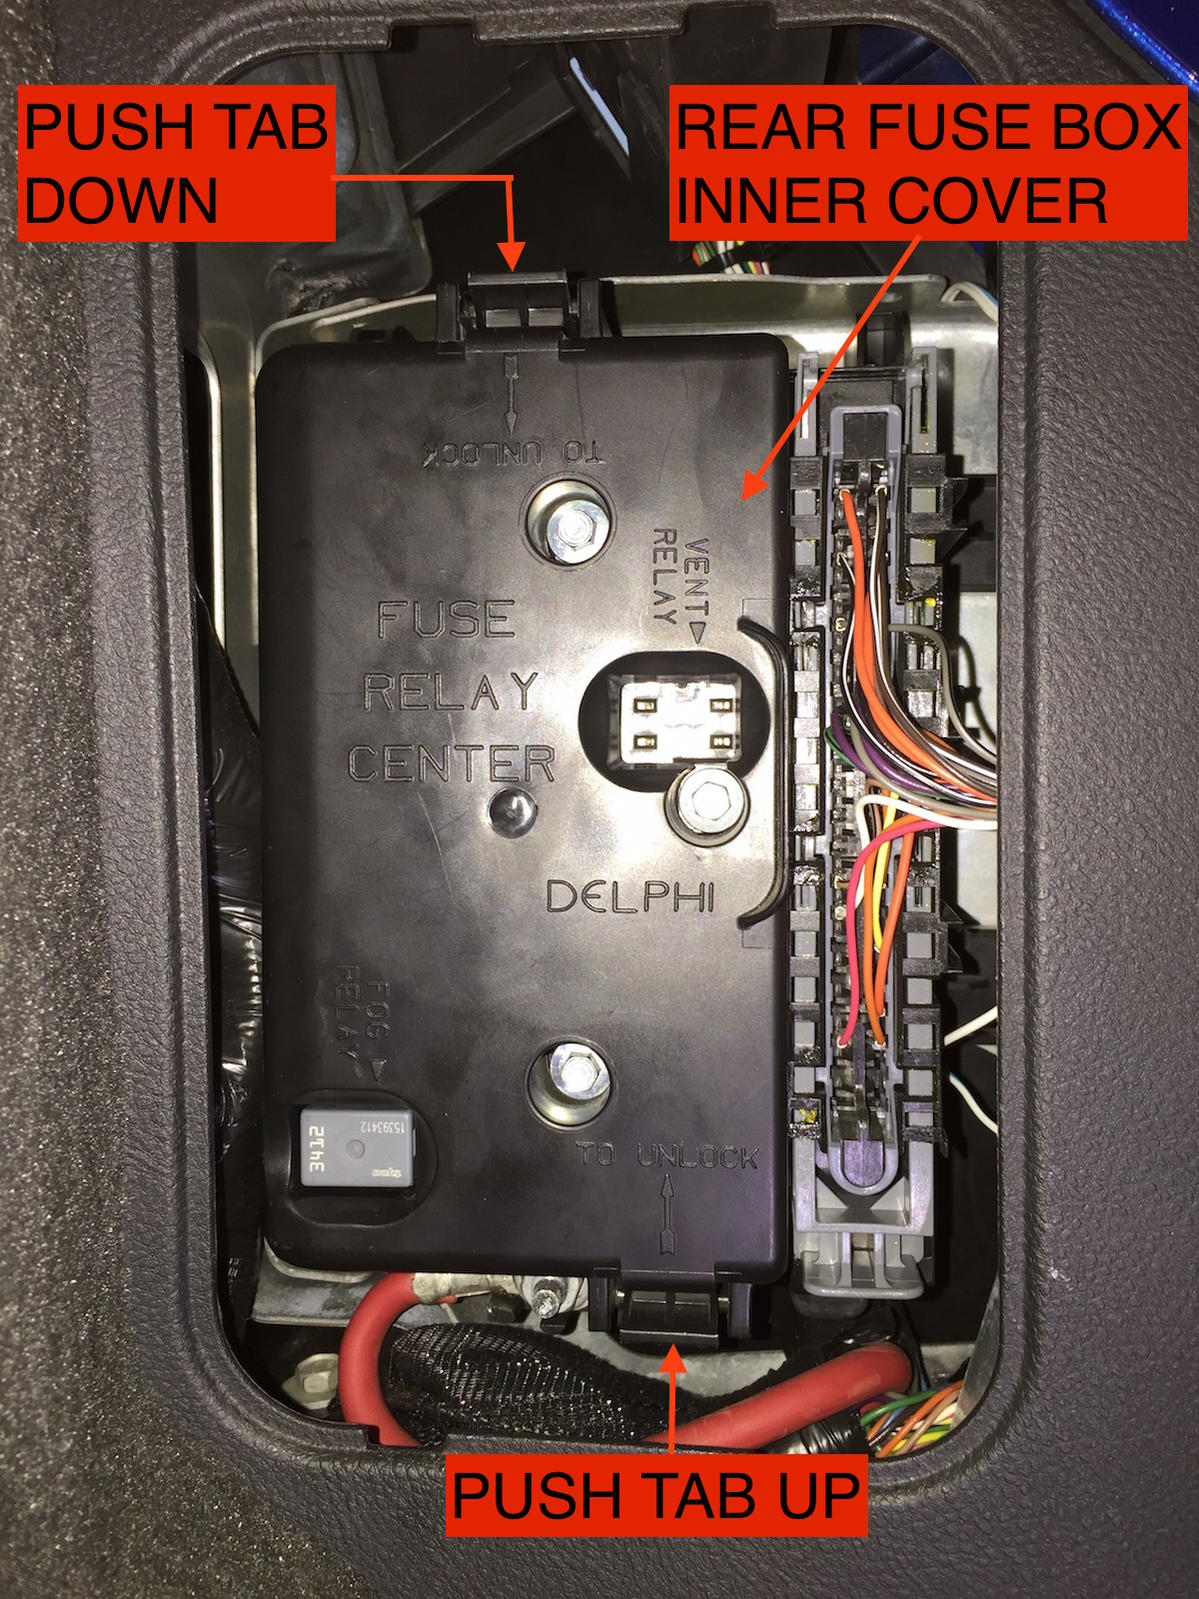 Old Home Fuse Box Parts Detailed Schematics Diagram Push In Basic Wiring U2022 Federal Pacific